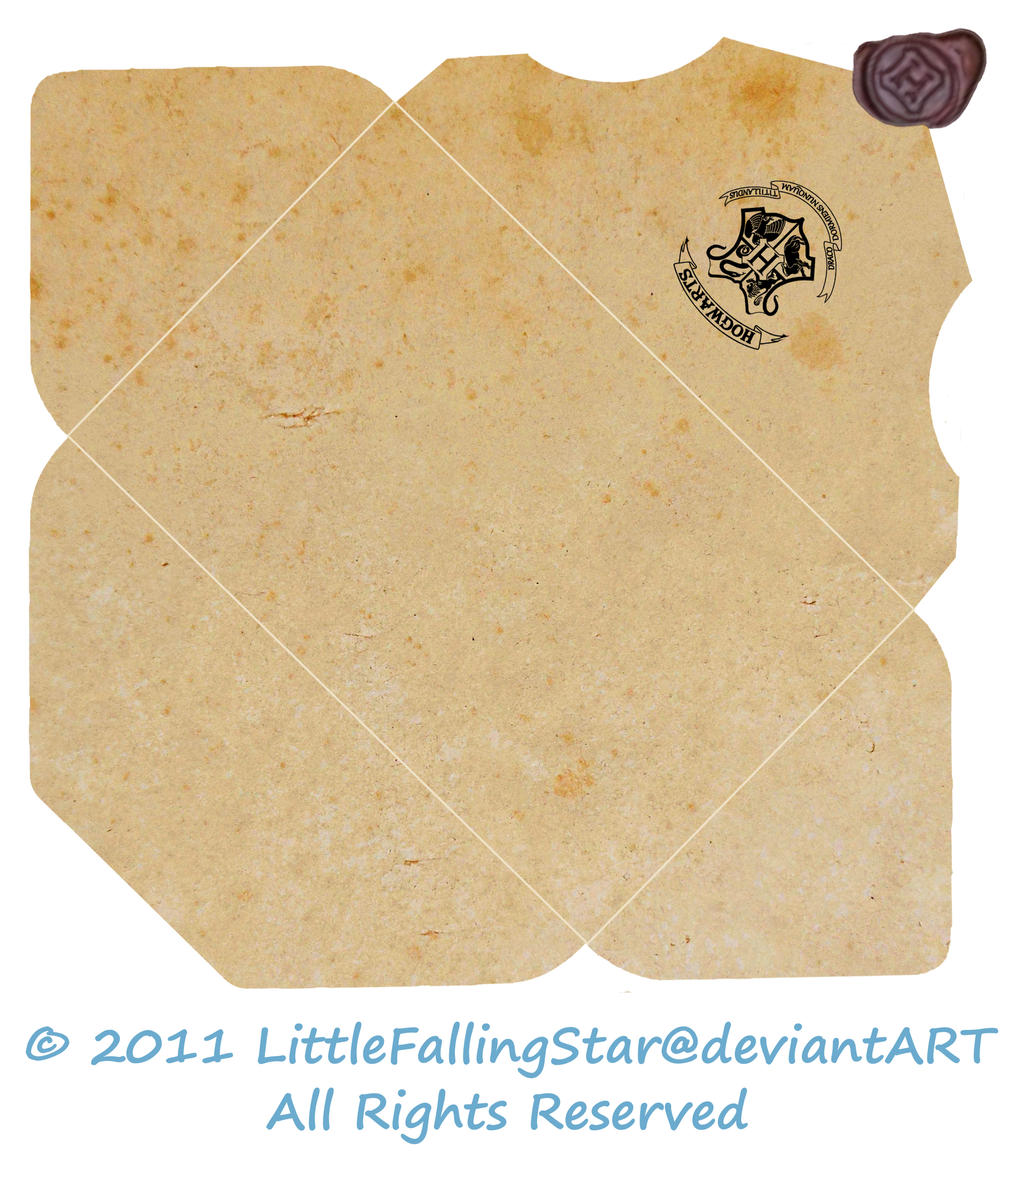 Hogwarts Envelope By LittleFallingStar On DeviantArt - Hogwarts acceptance letter envelope template printable